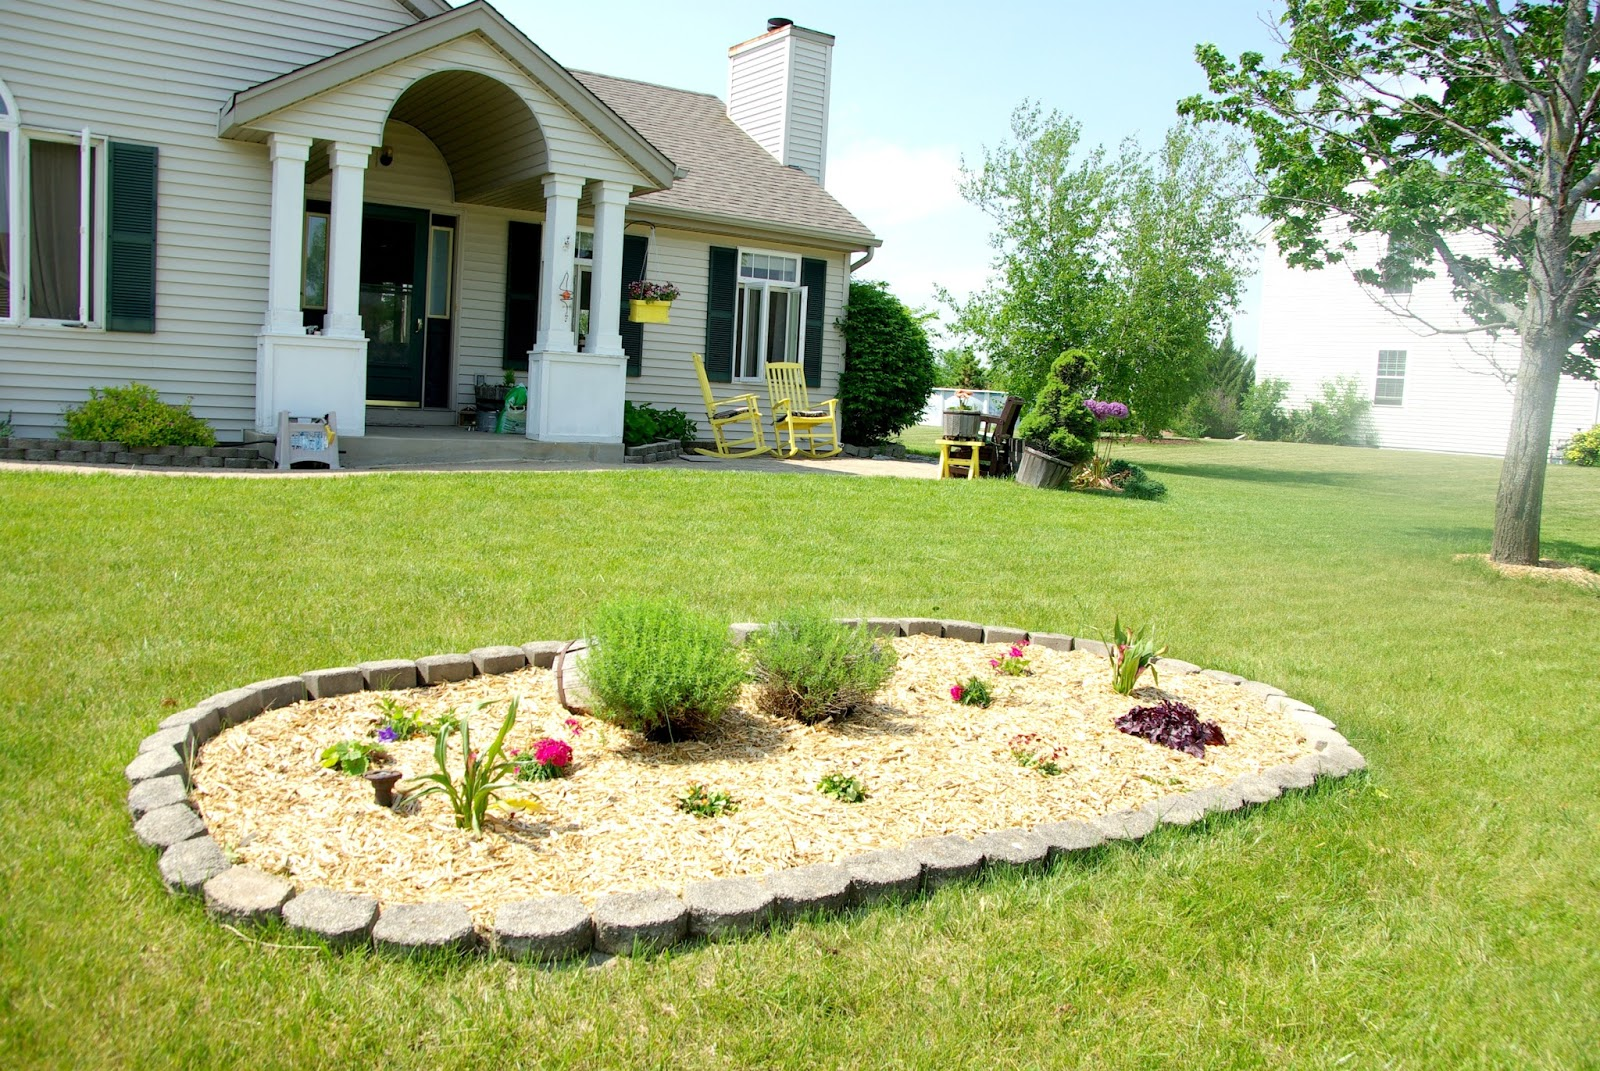 Updating front yard planter • Our House Now a Home